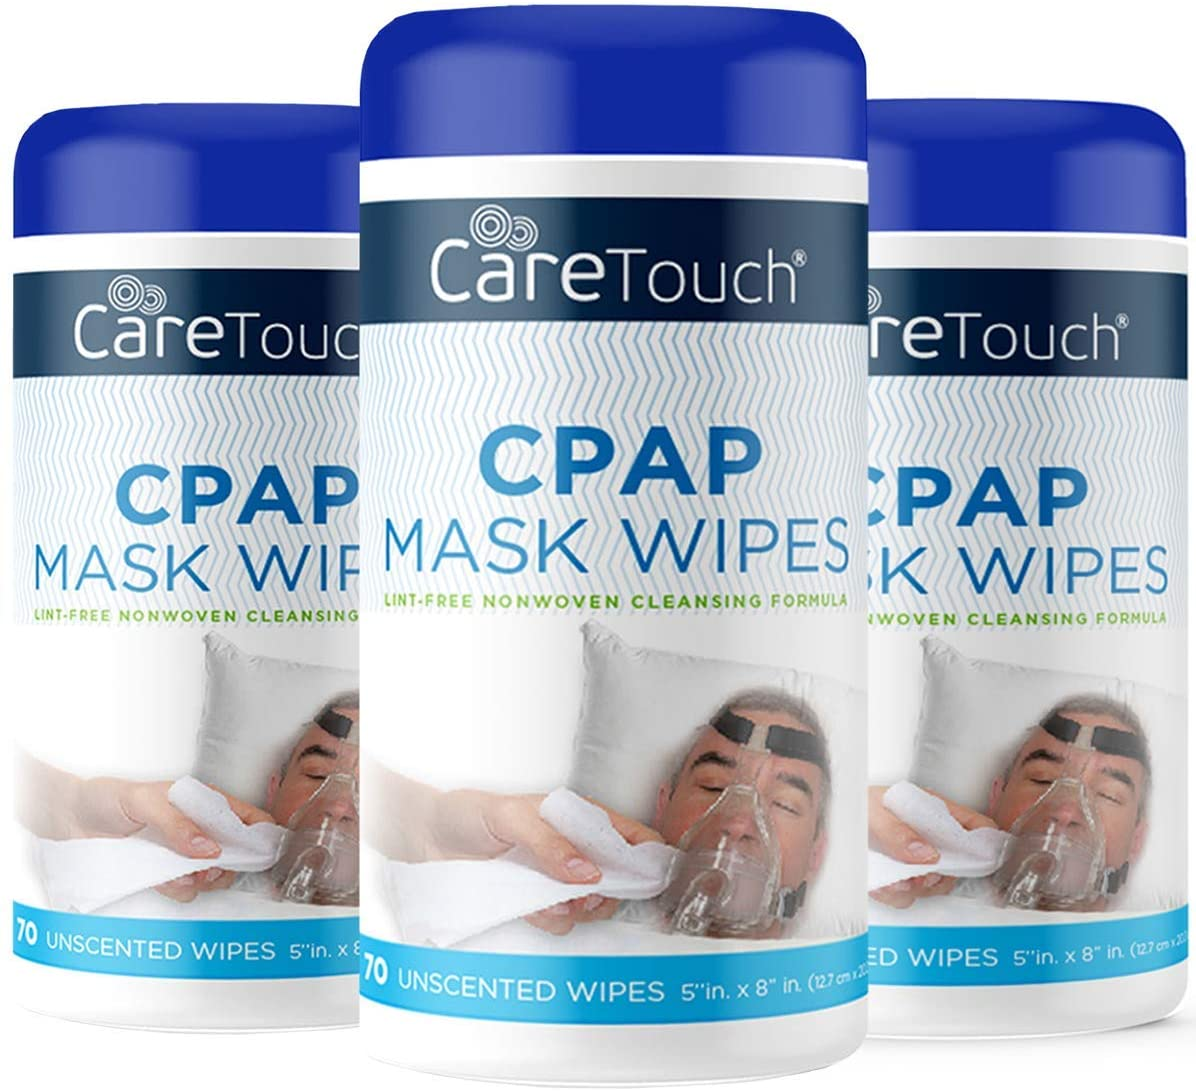 Care Touch CPAP Mask Cleaning Wipes - Unscented | 3 Packs of 70 Unscented Cleaning Wipes for CPAP Masks (210 Total) | Made in The USA